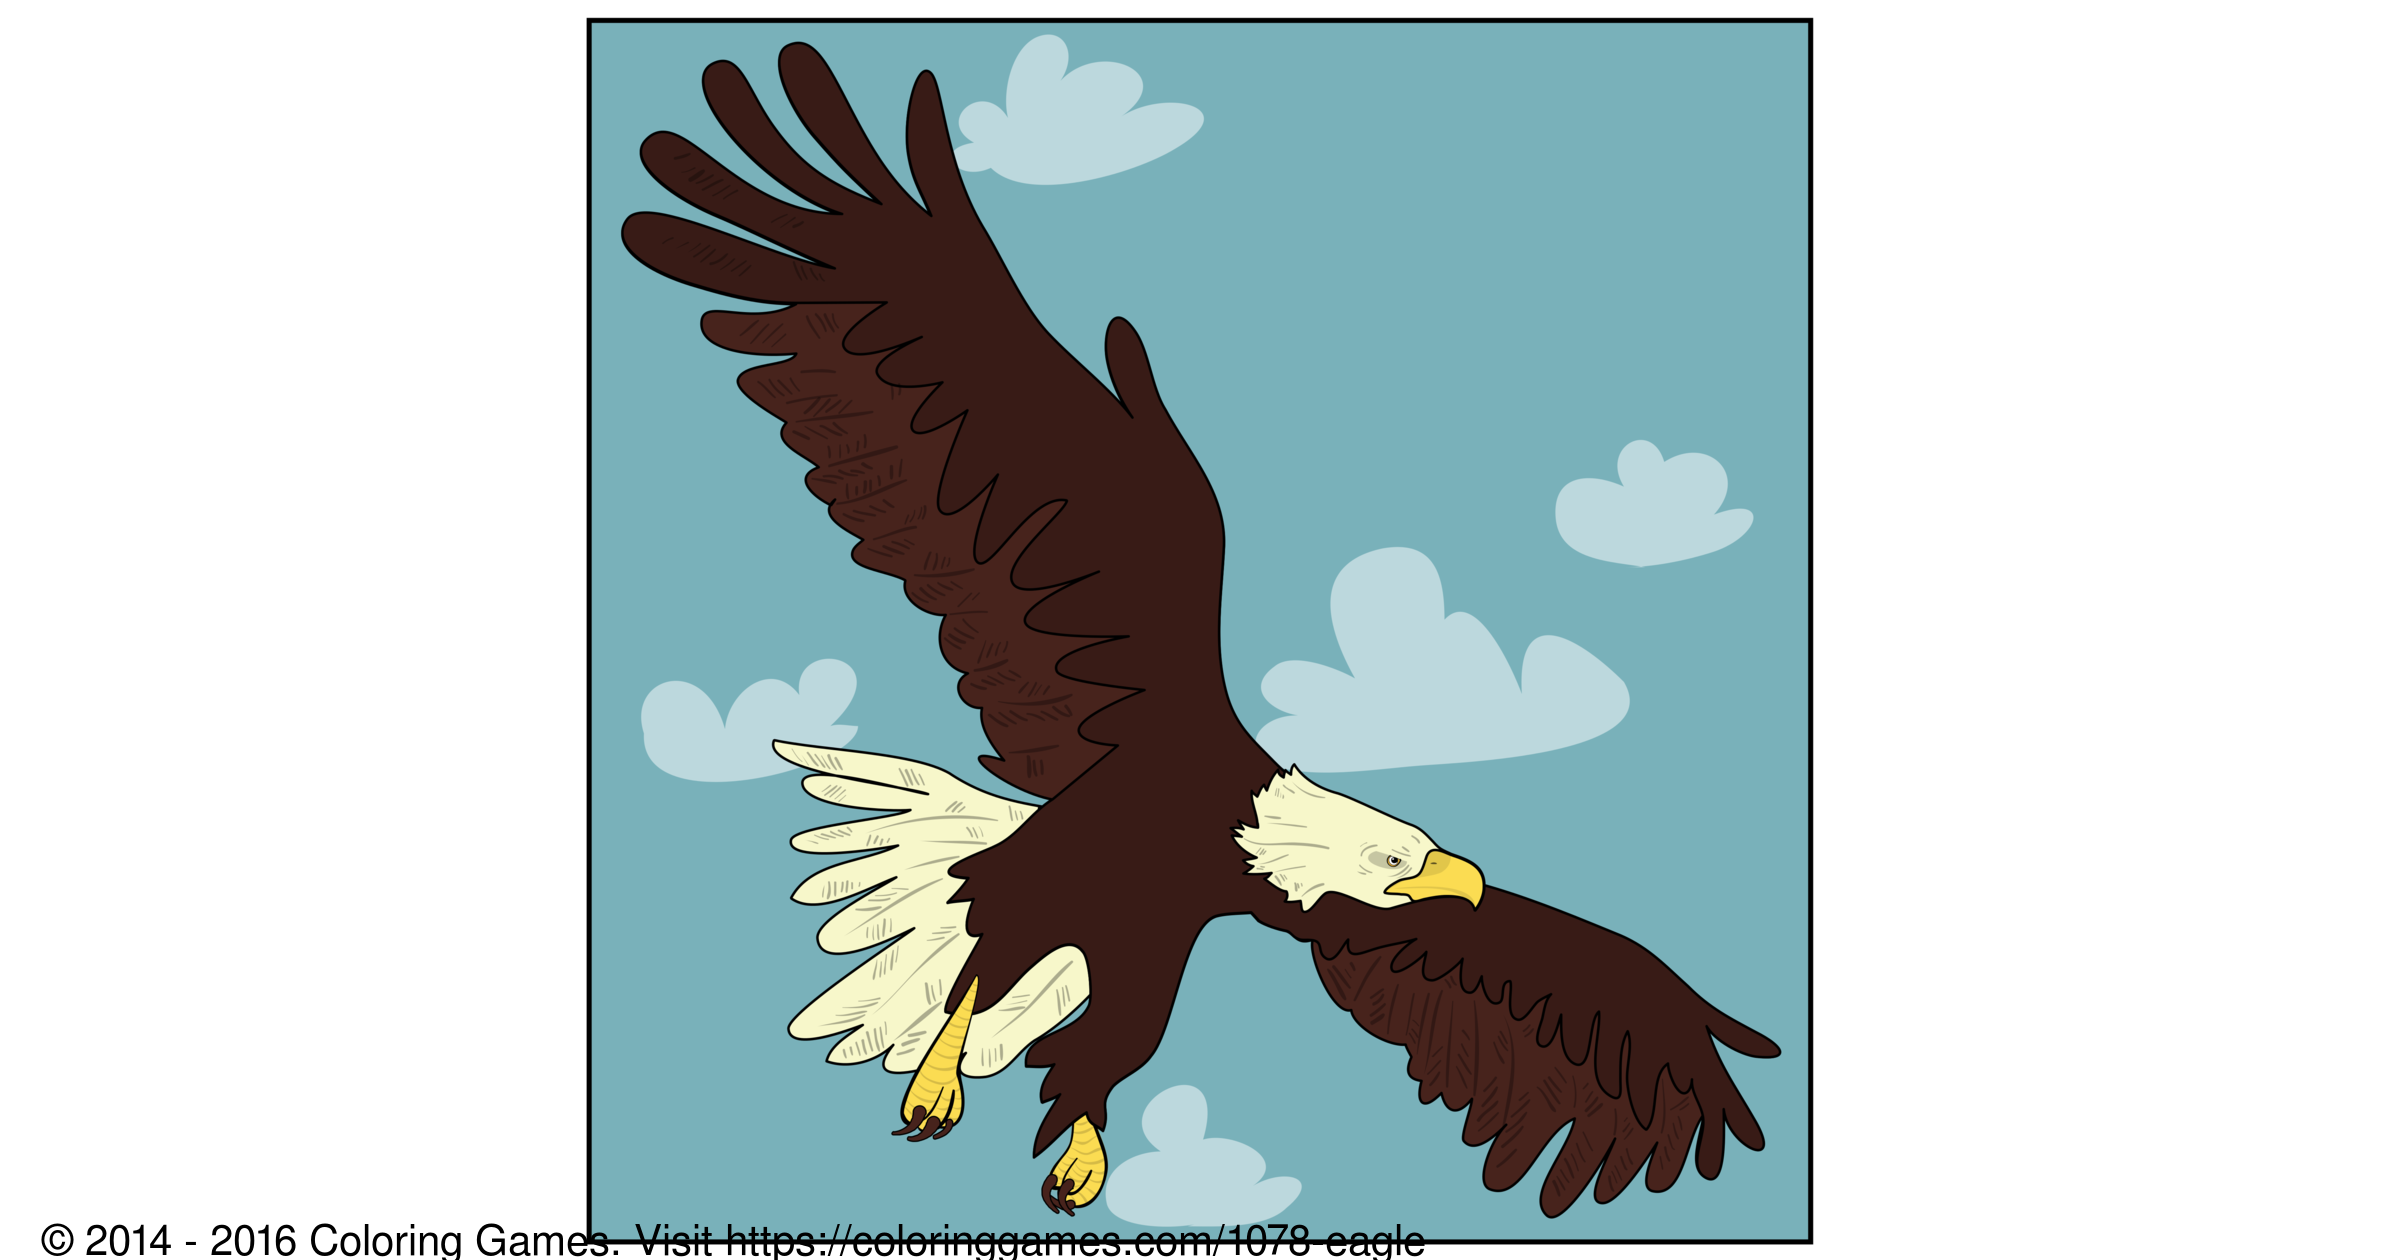 Eagle - Coloring Games and Coloring Pages